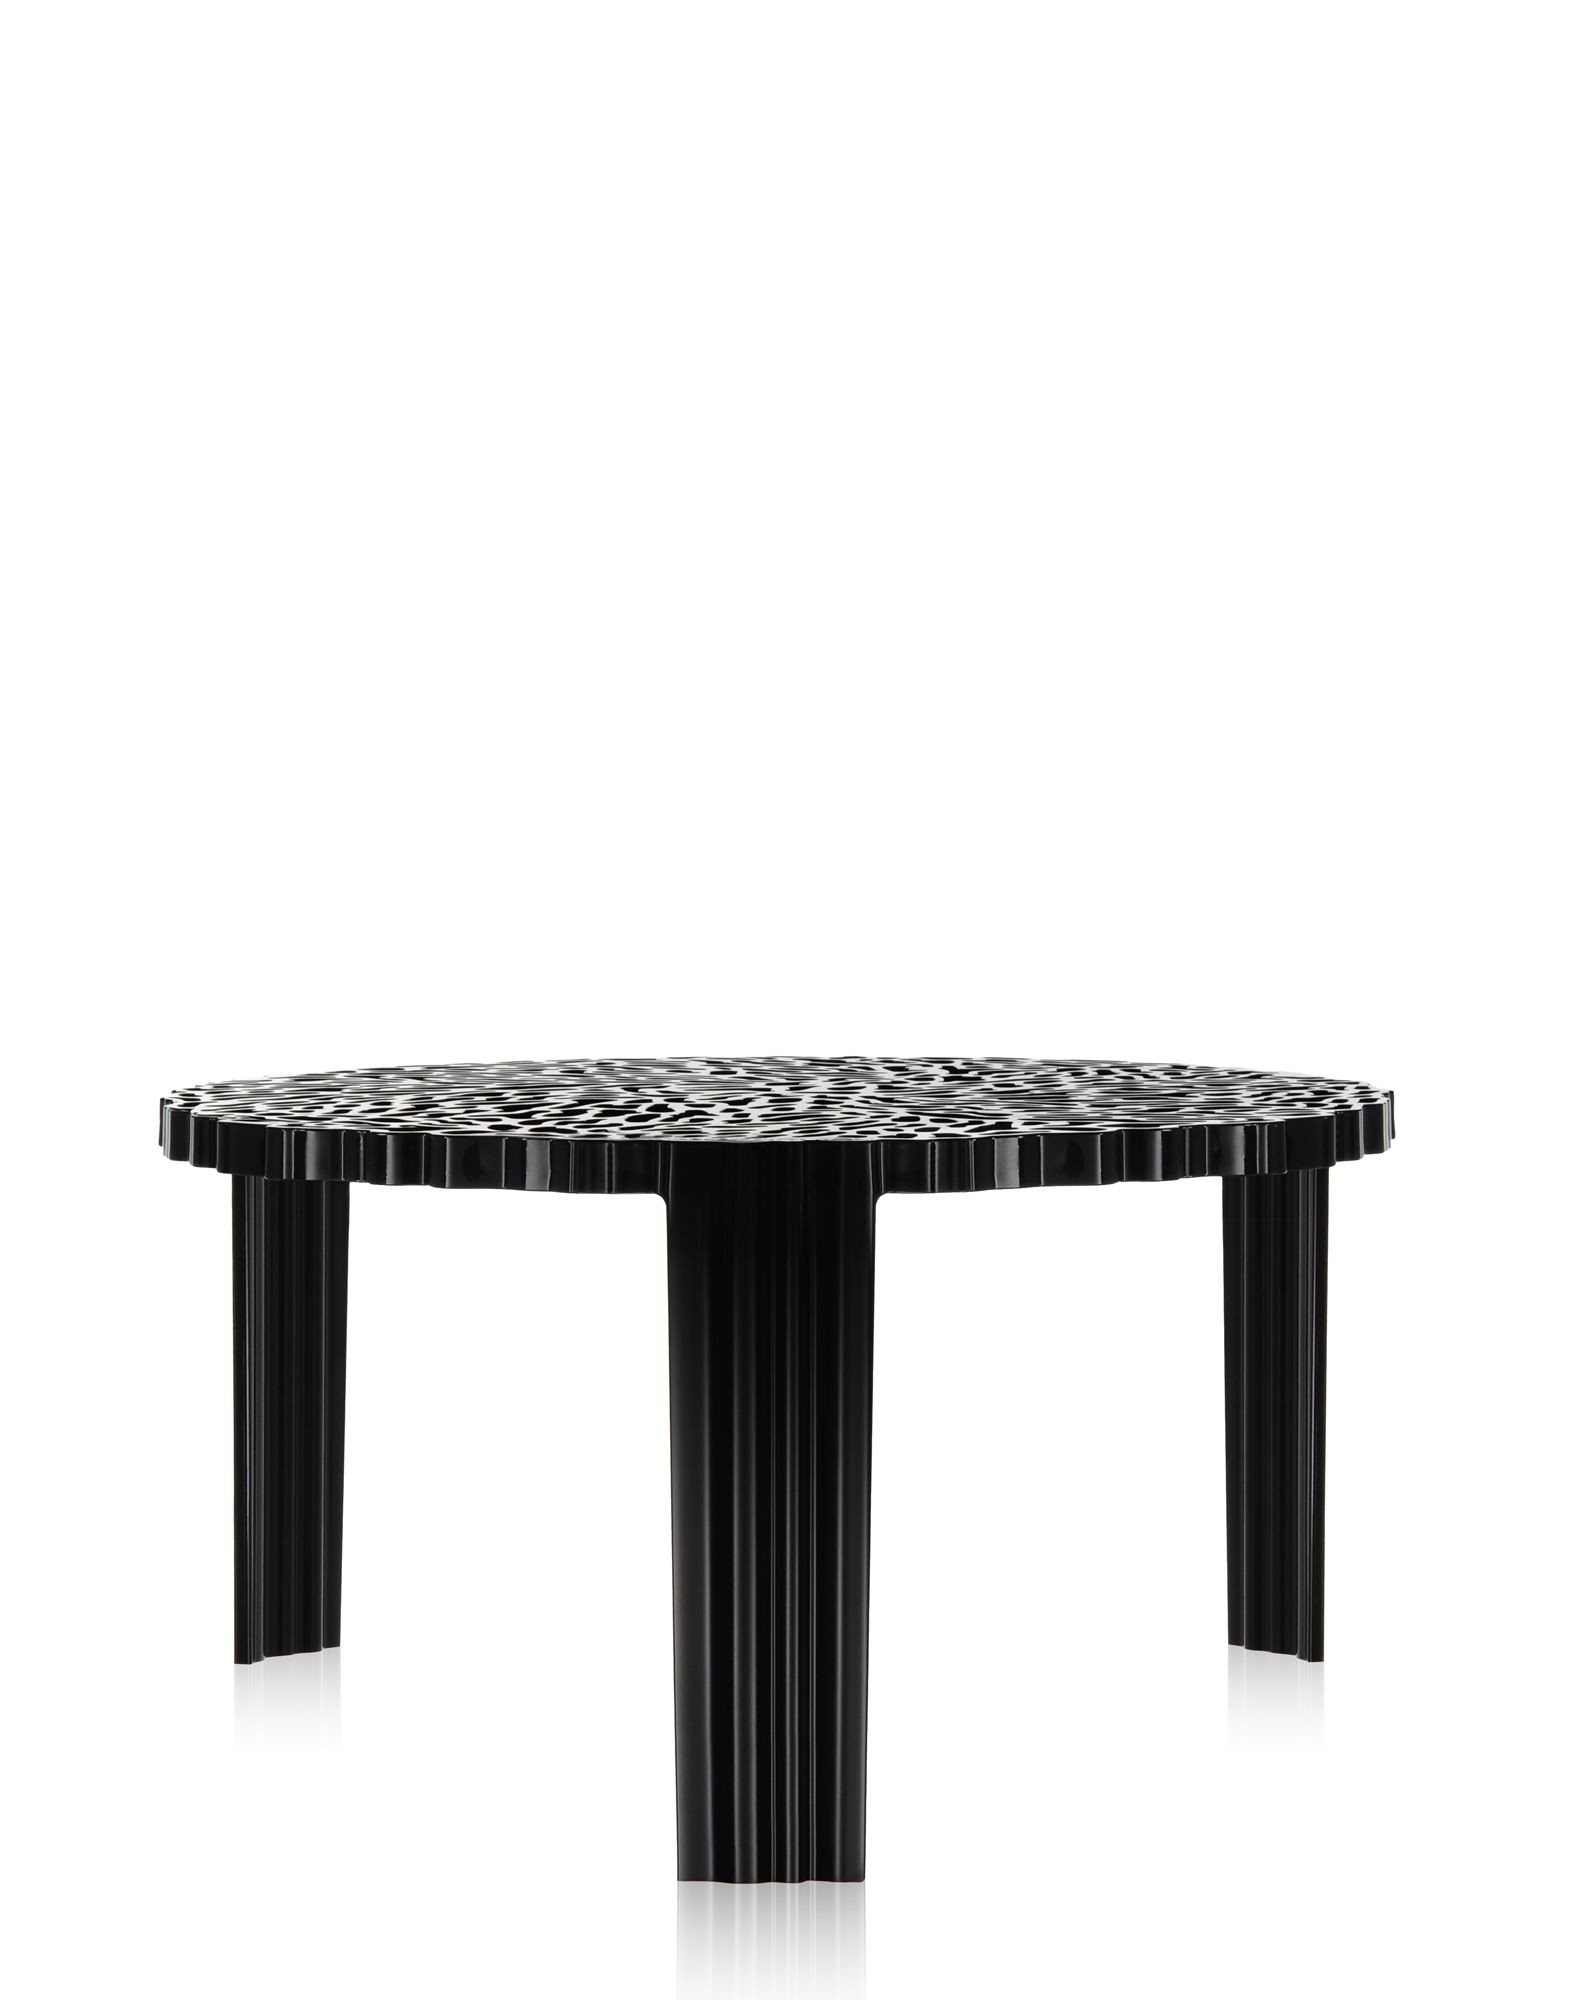 Taille Table Basse Table Basse T Table De Kartell 3 Tailles 4 Coloris